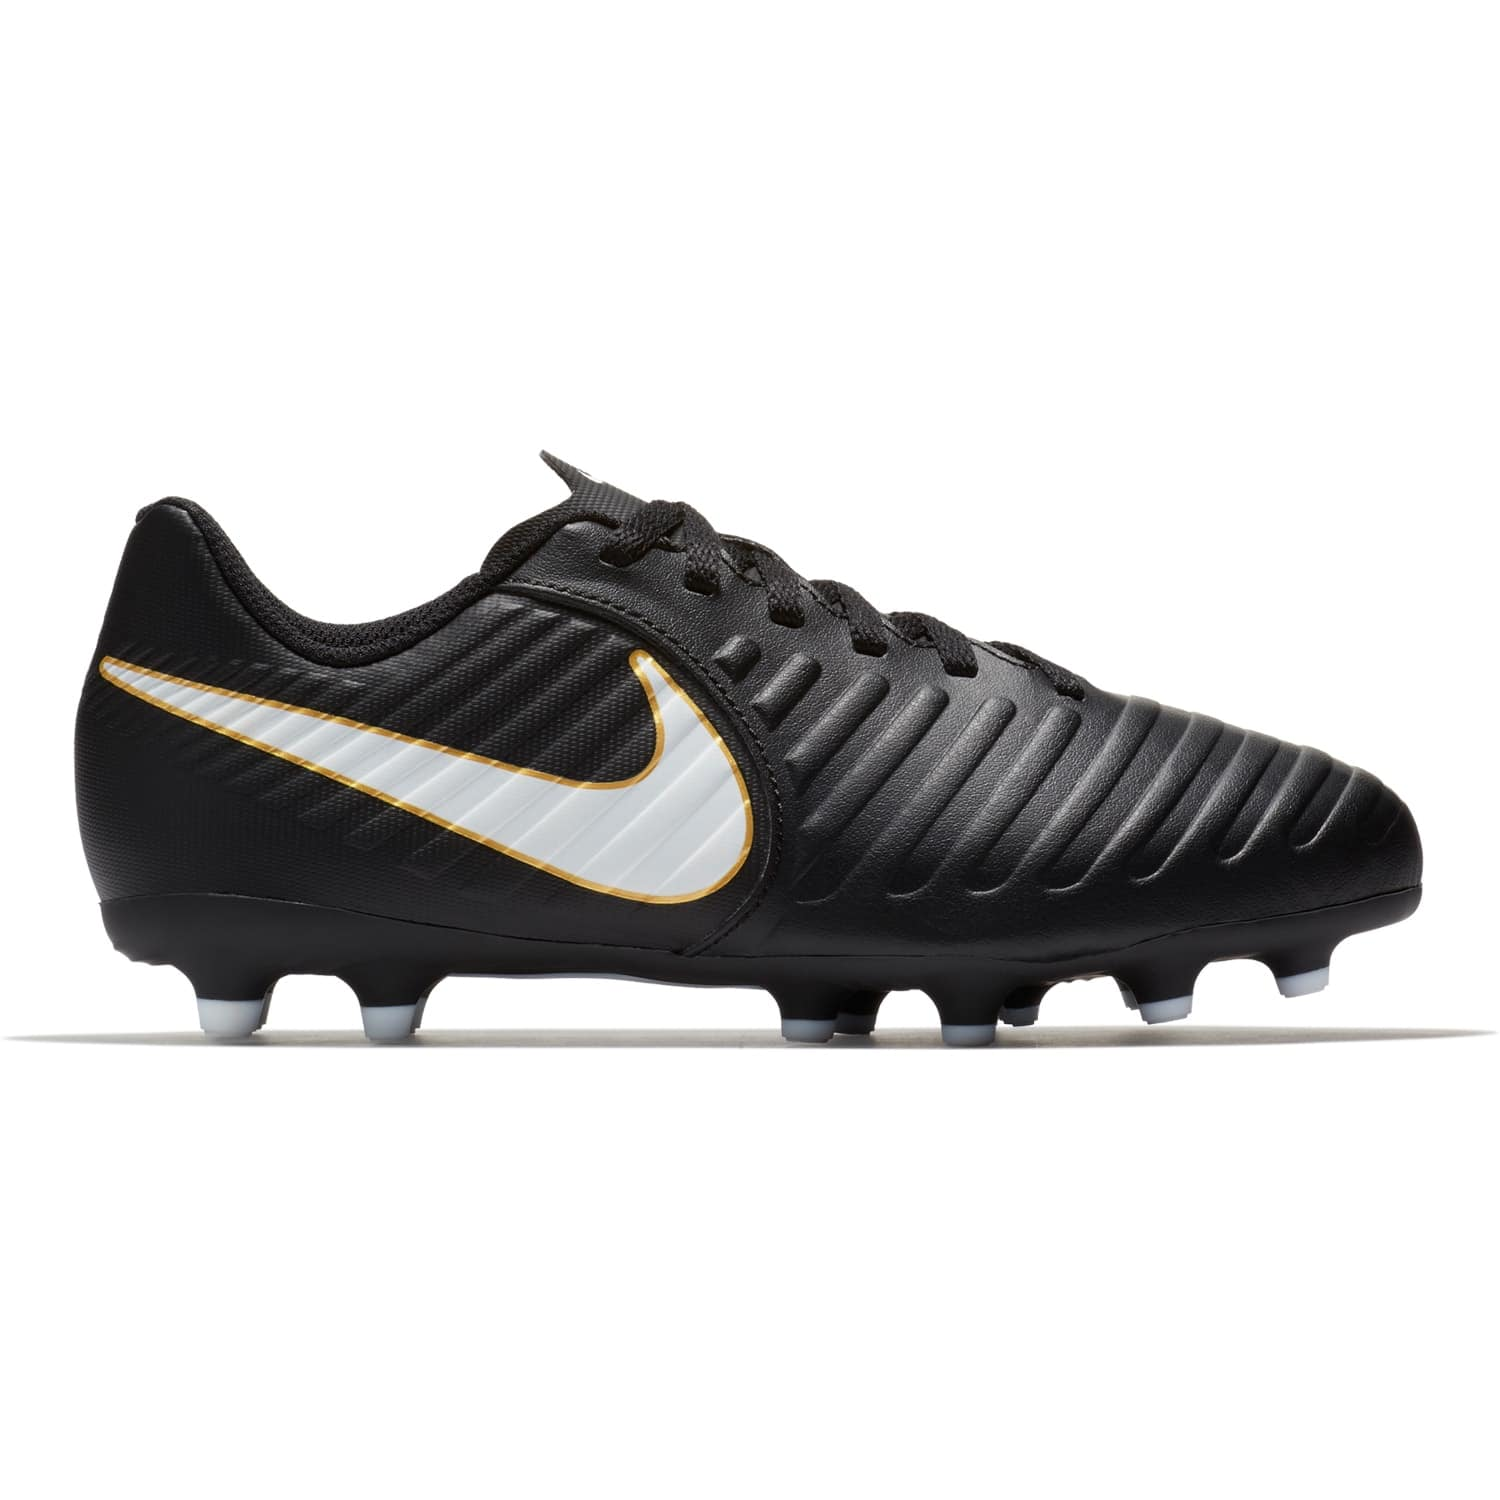 33f21aeb Nike Jr Tiempo Rio IV Firm-Ground Kids' Soccer Cleats - Slickdeals.net